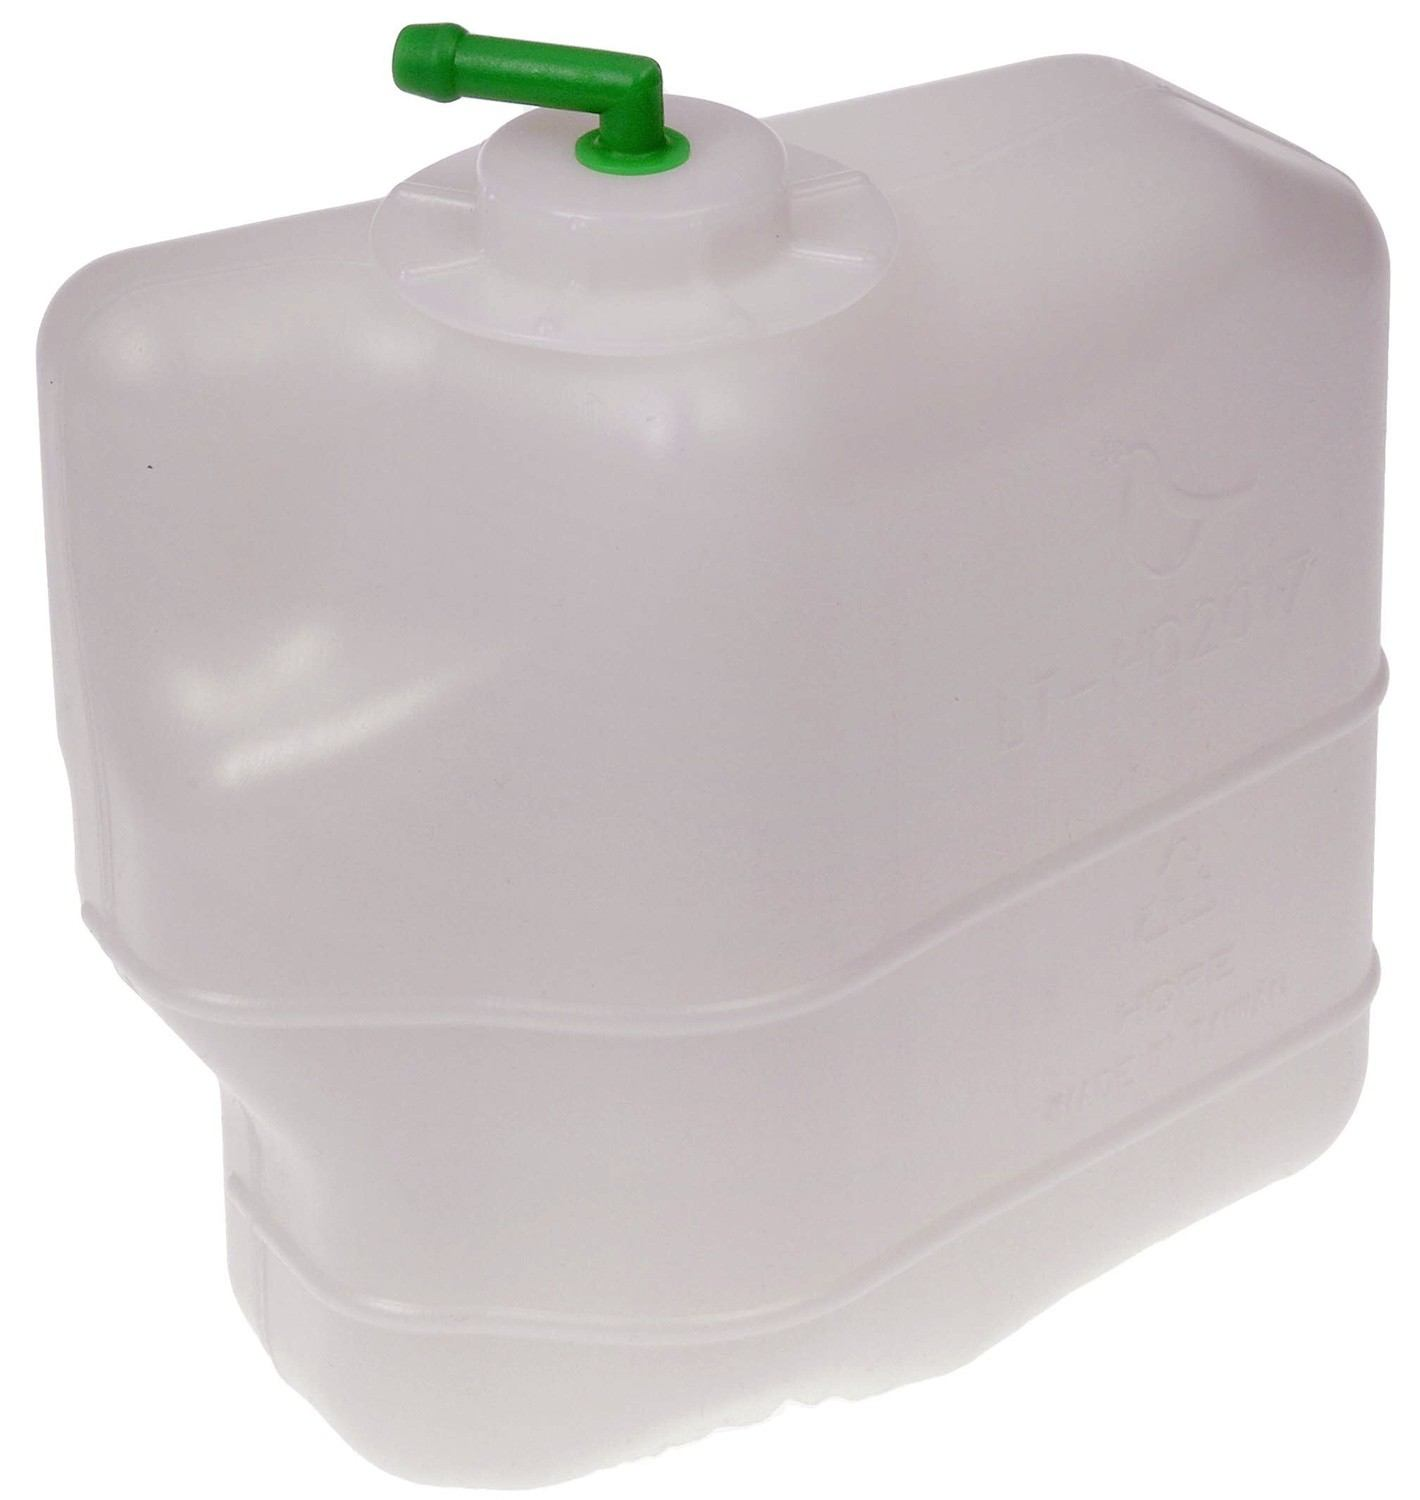 DORMAN OE SOLUTIONS - Engine Coolant Recovery Tank - DRE 603-294